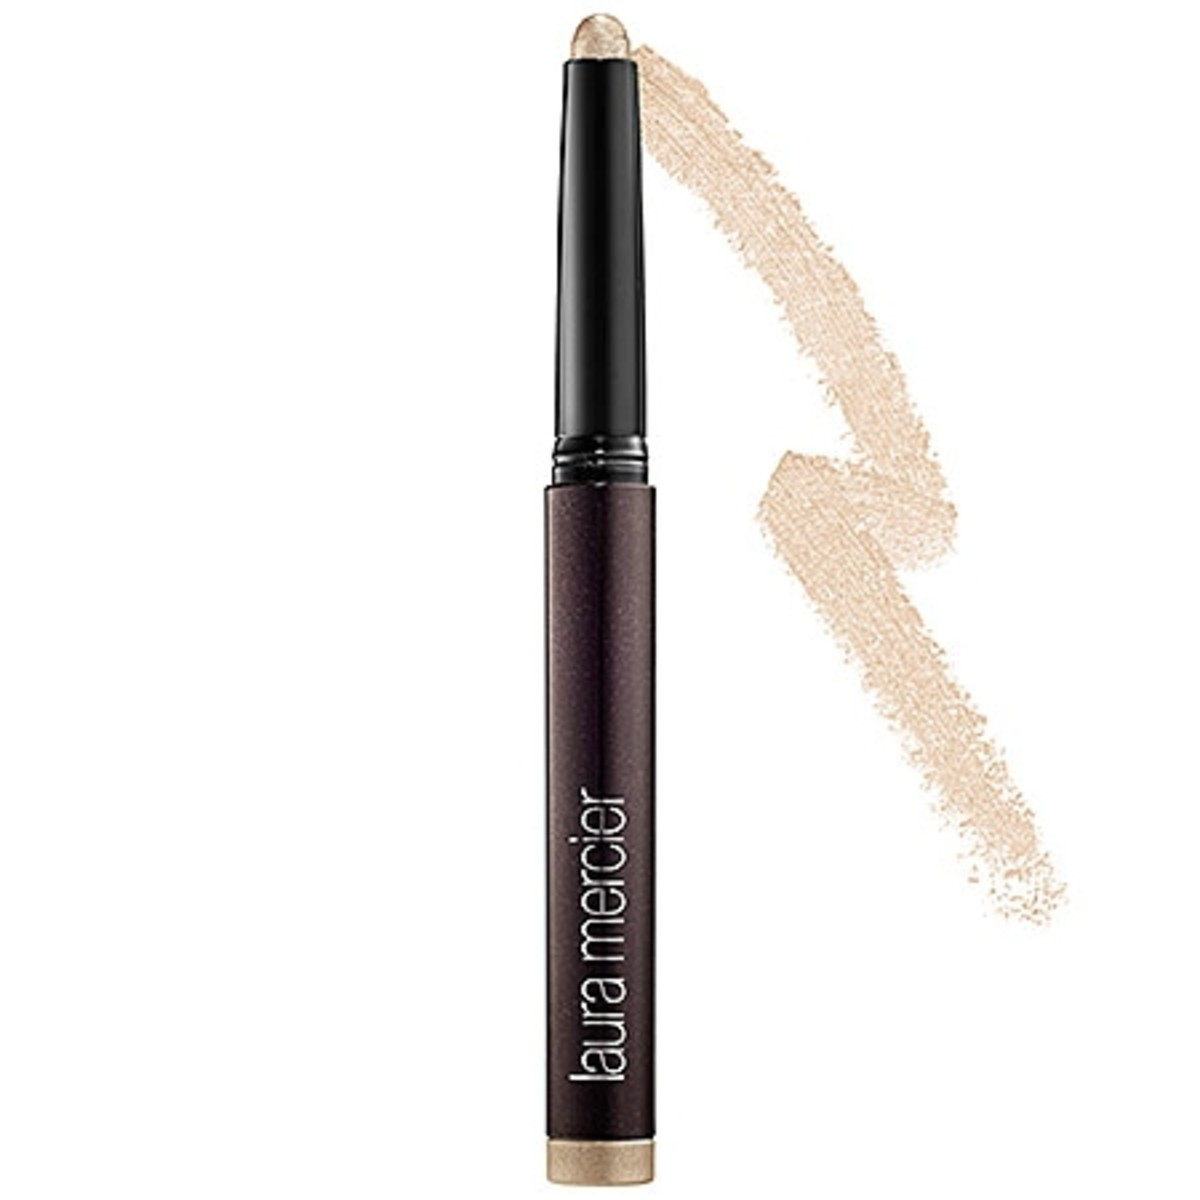 Laura Mercier Caviar Stick Eye Colour in Sugar Frost